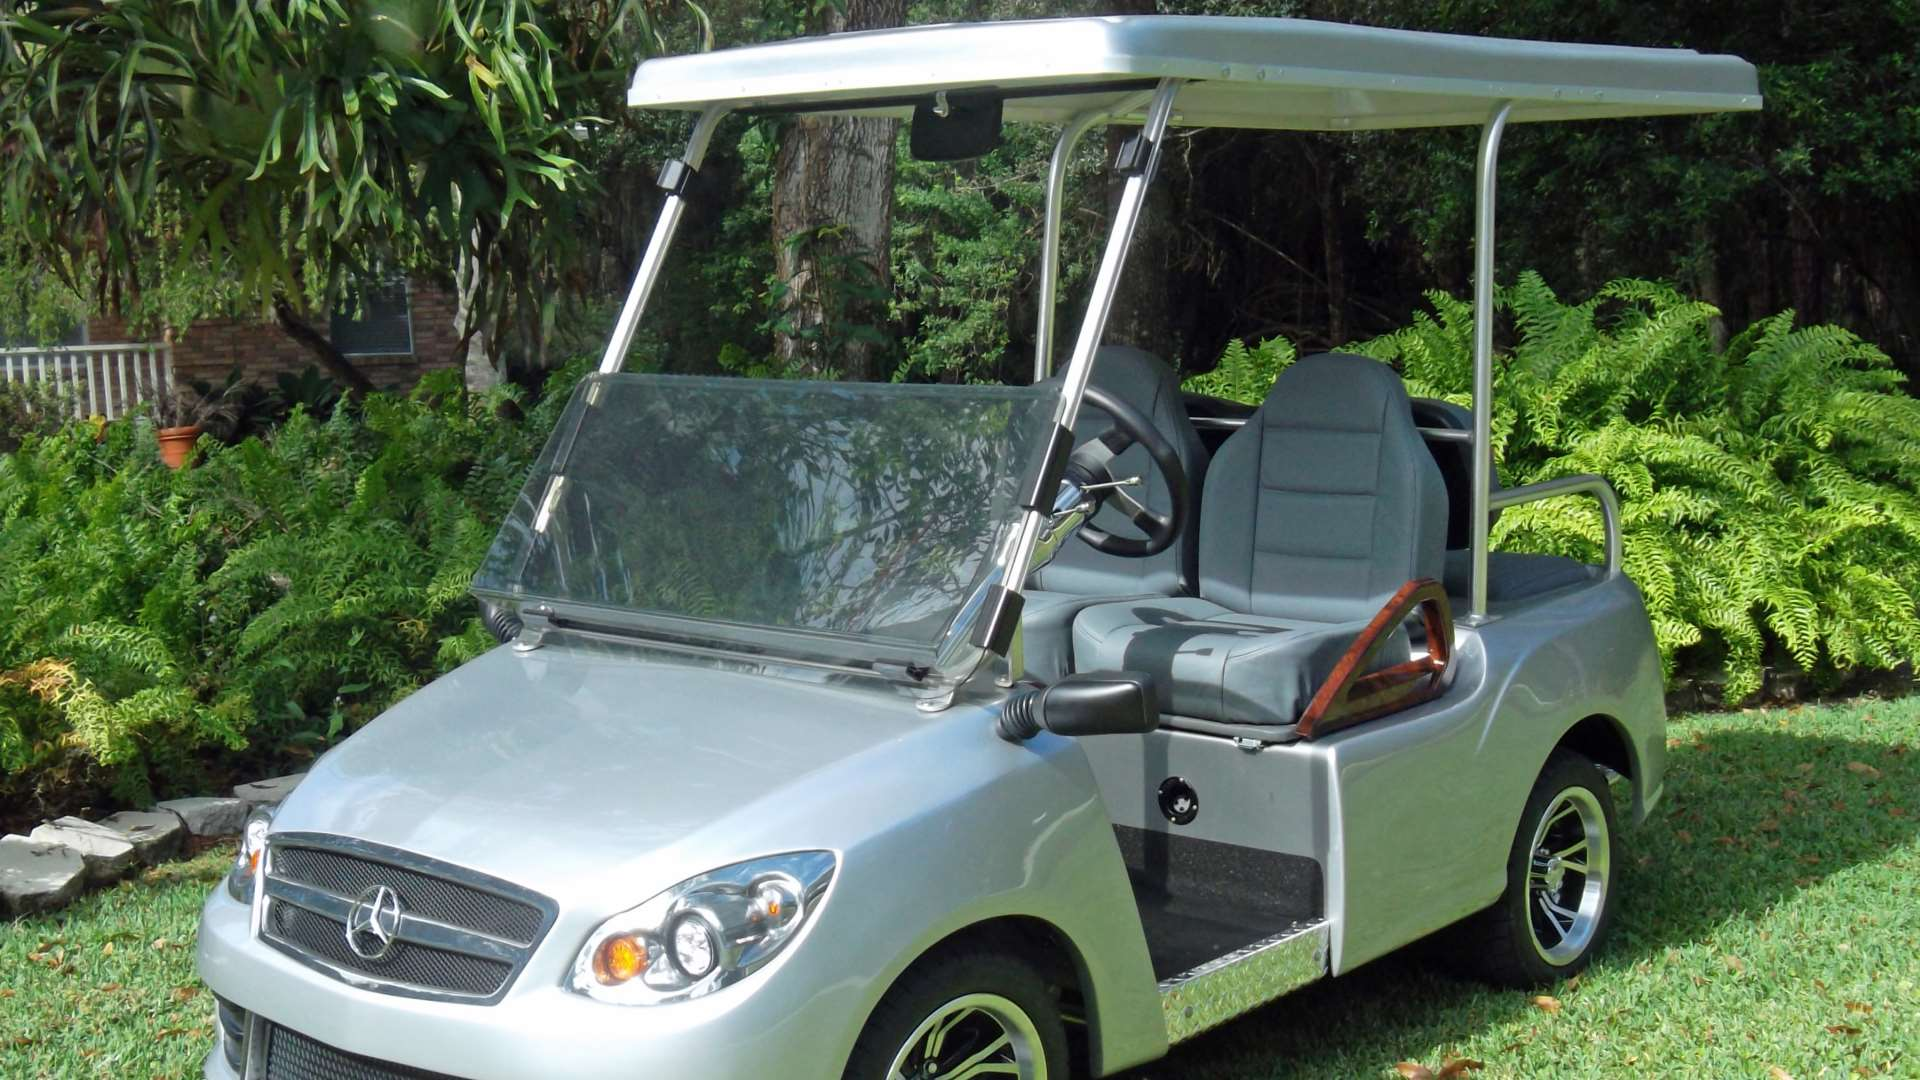 golf carts by luxury golf carts features a silver cart on a manicured lawn